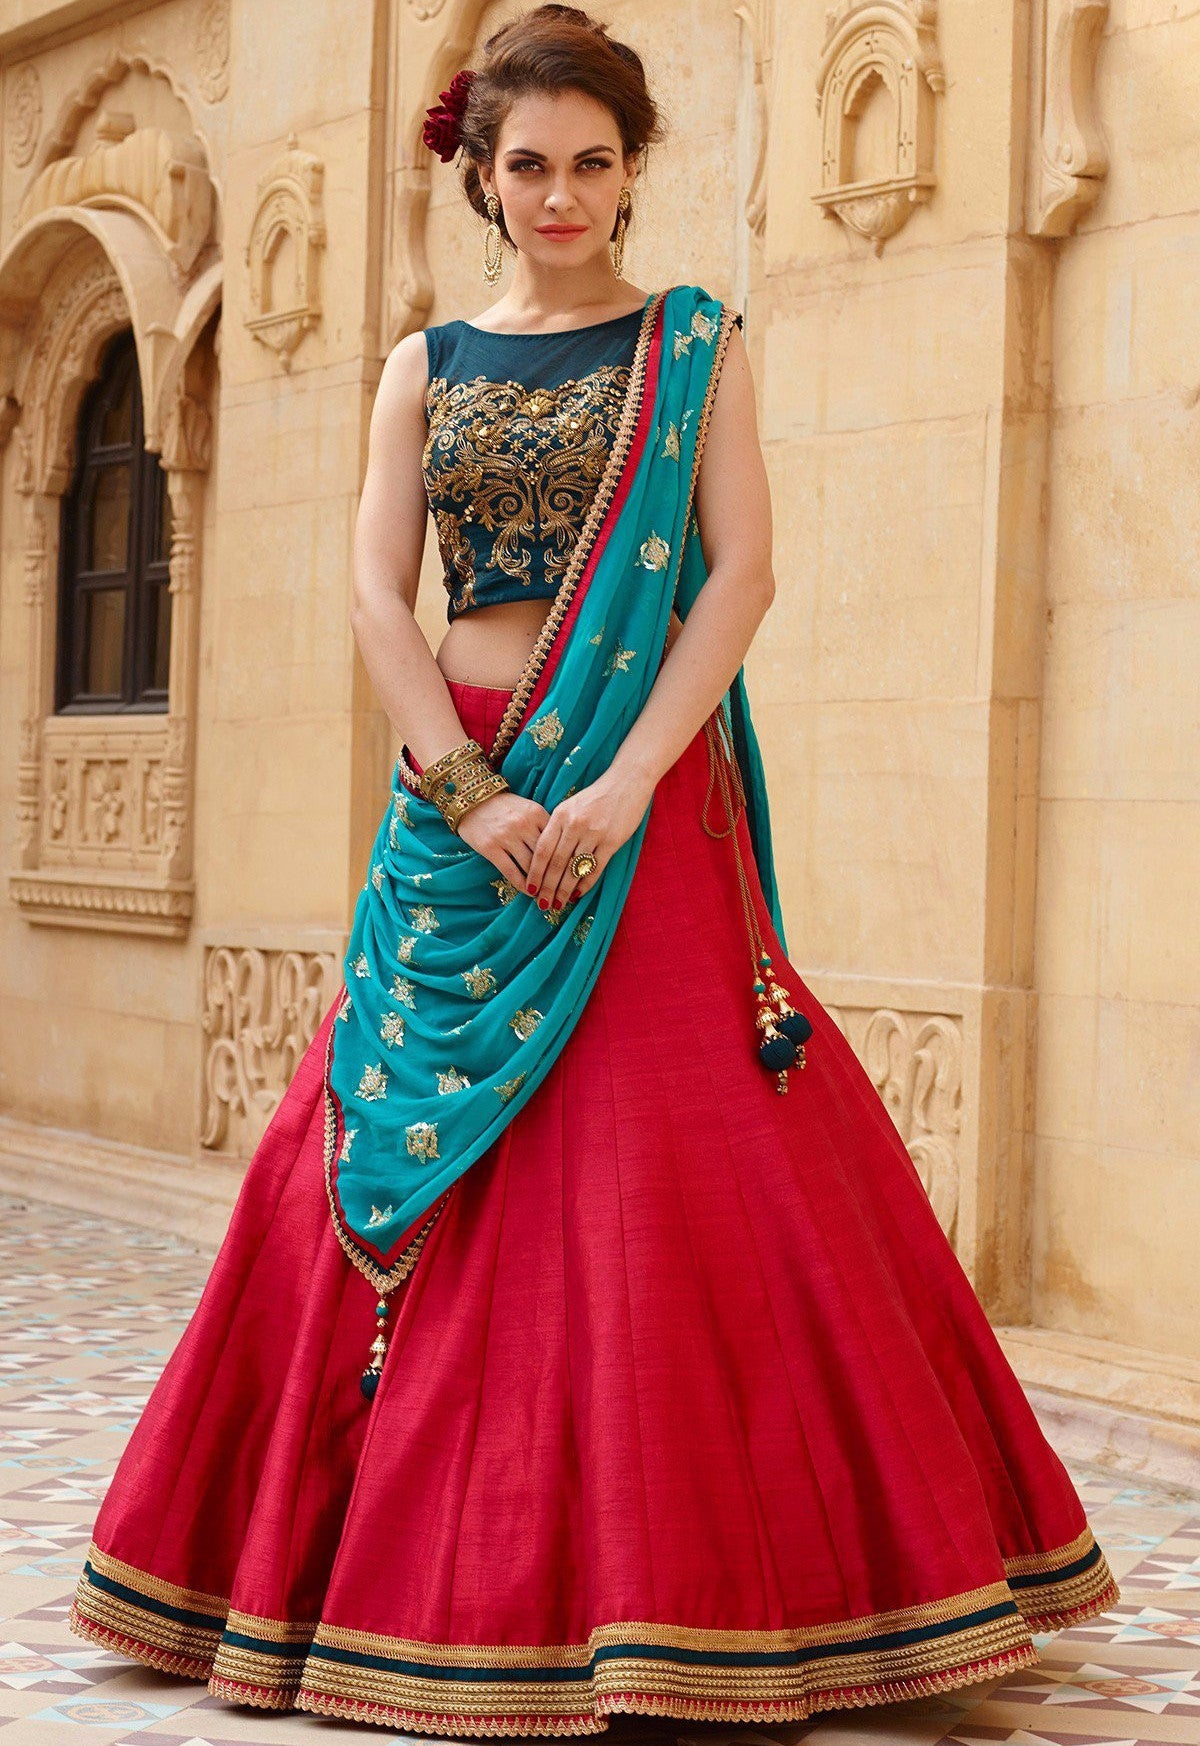 98e495a503 Buy Red & Blue Embroidered Semi-stitched Lehenga Choli Online – z ...